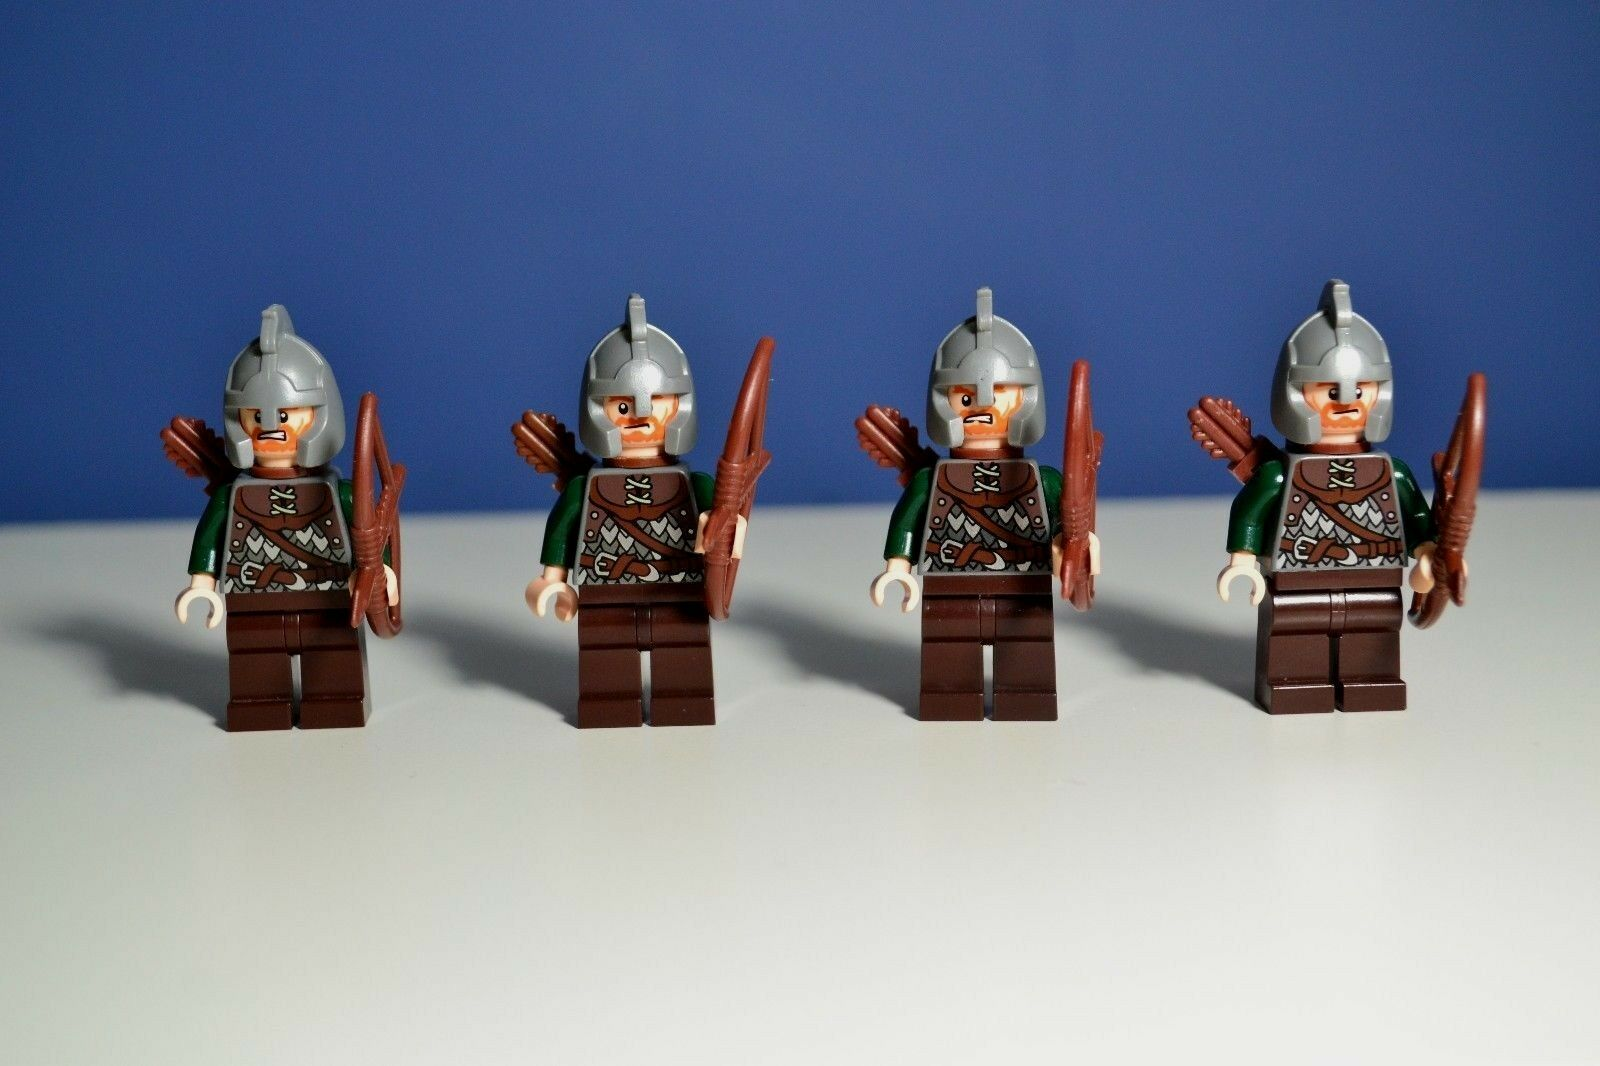 Lego Lord of the Rings ROHAN SOLDIER MINIFIGURE (9471) Lot Of 4 Authentic